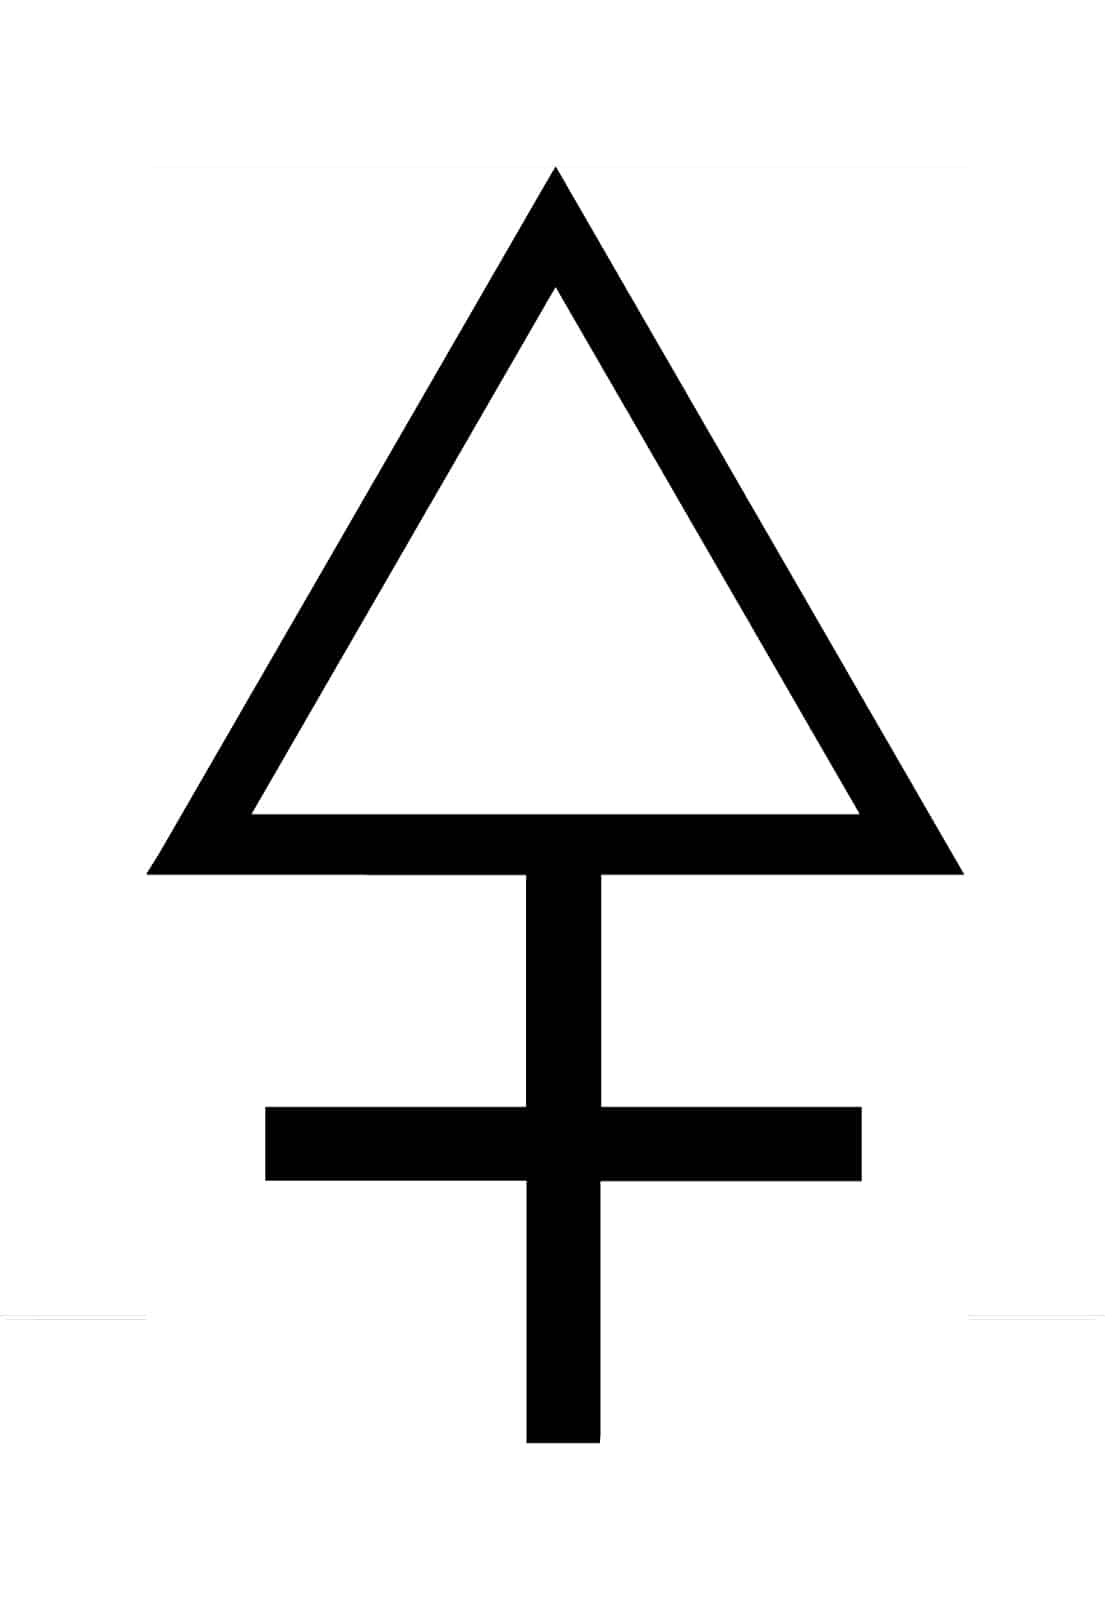 Alchemy Symbols and Their Meanings - The Extended List of